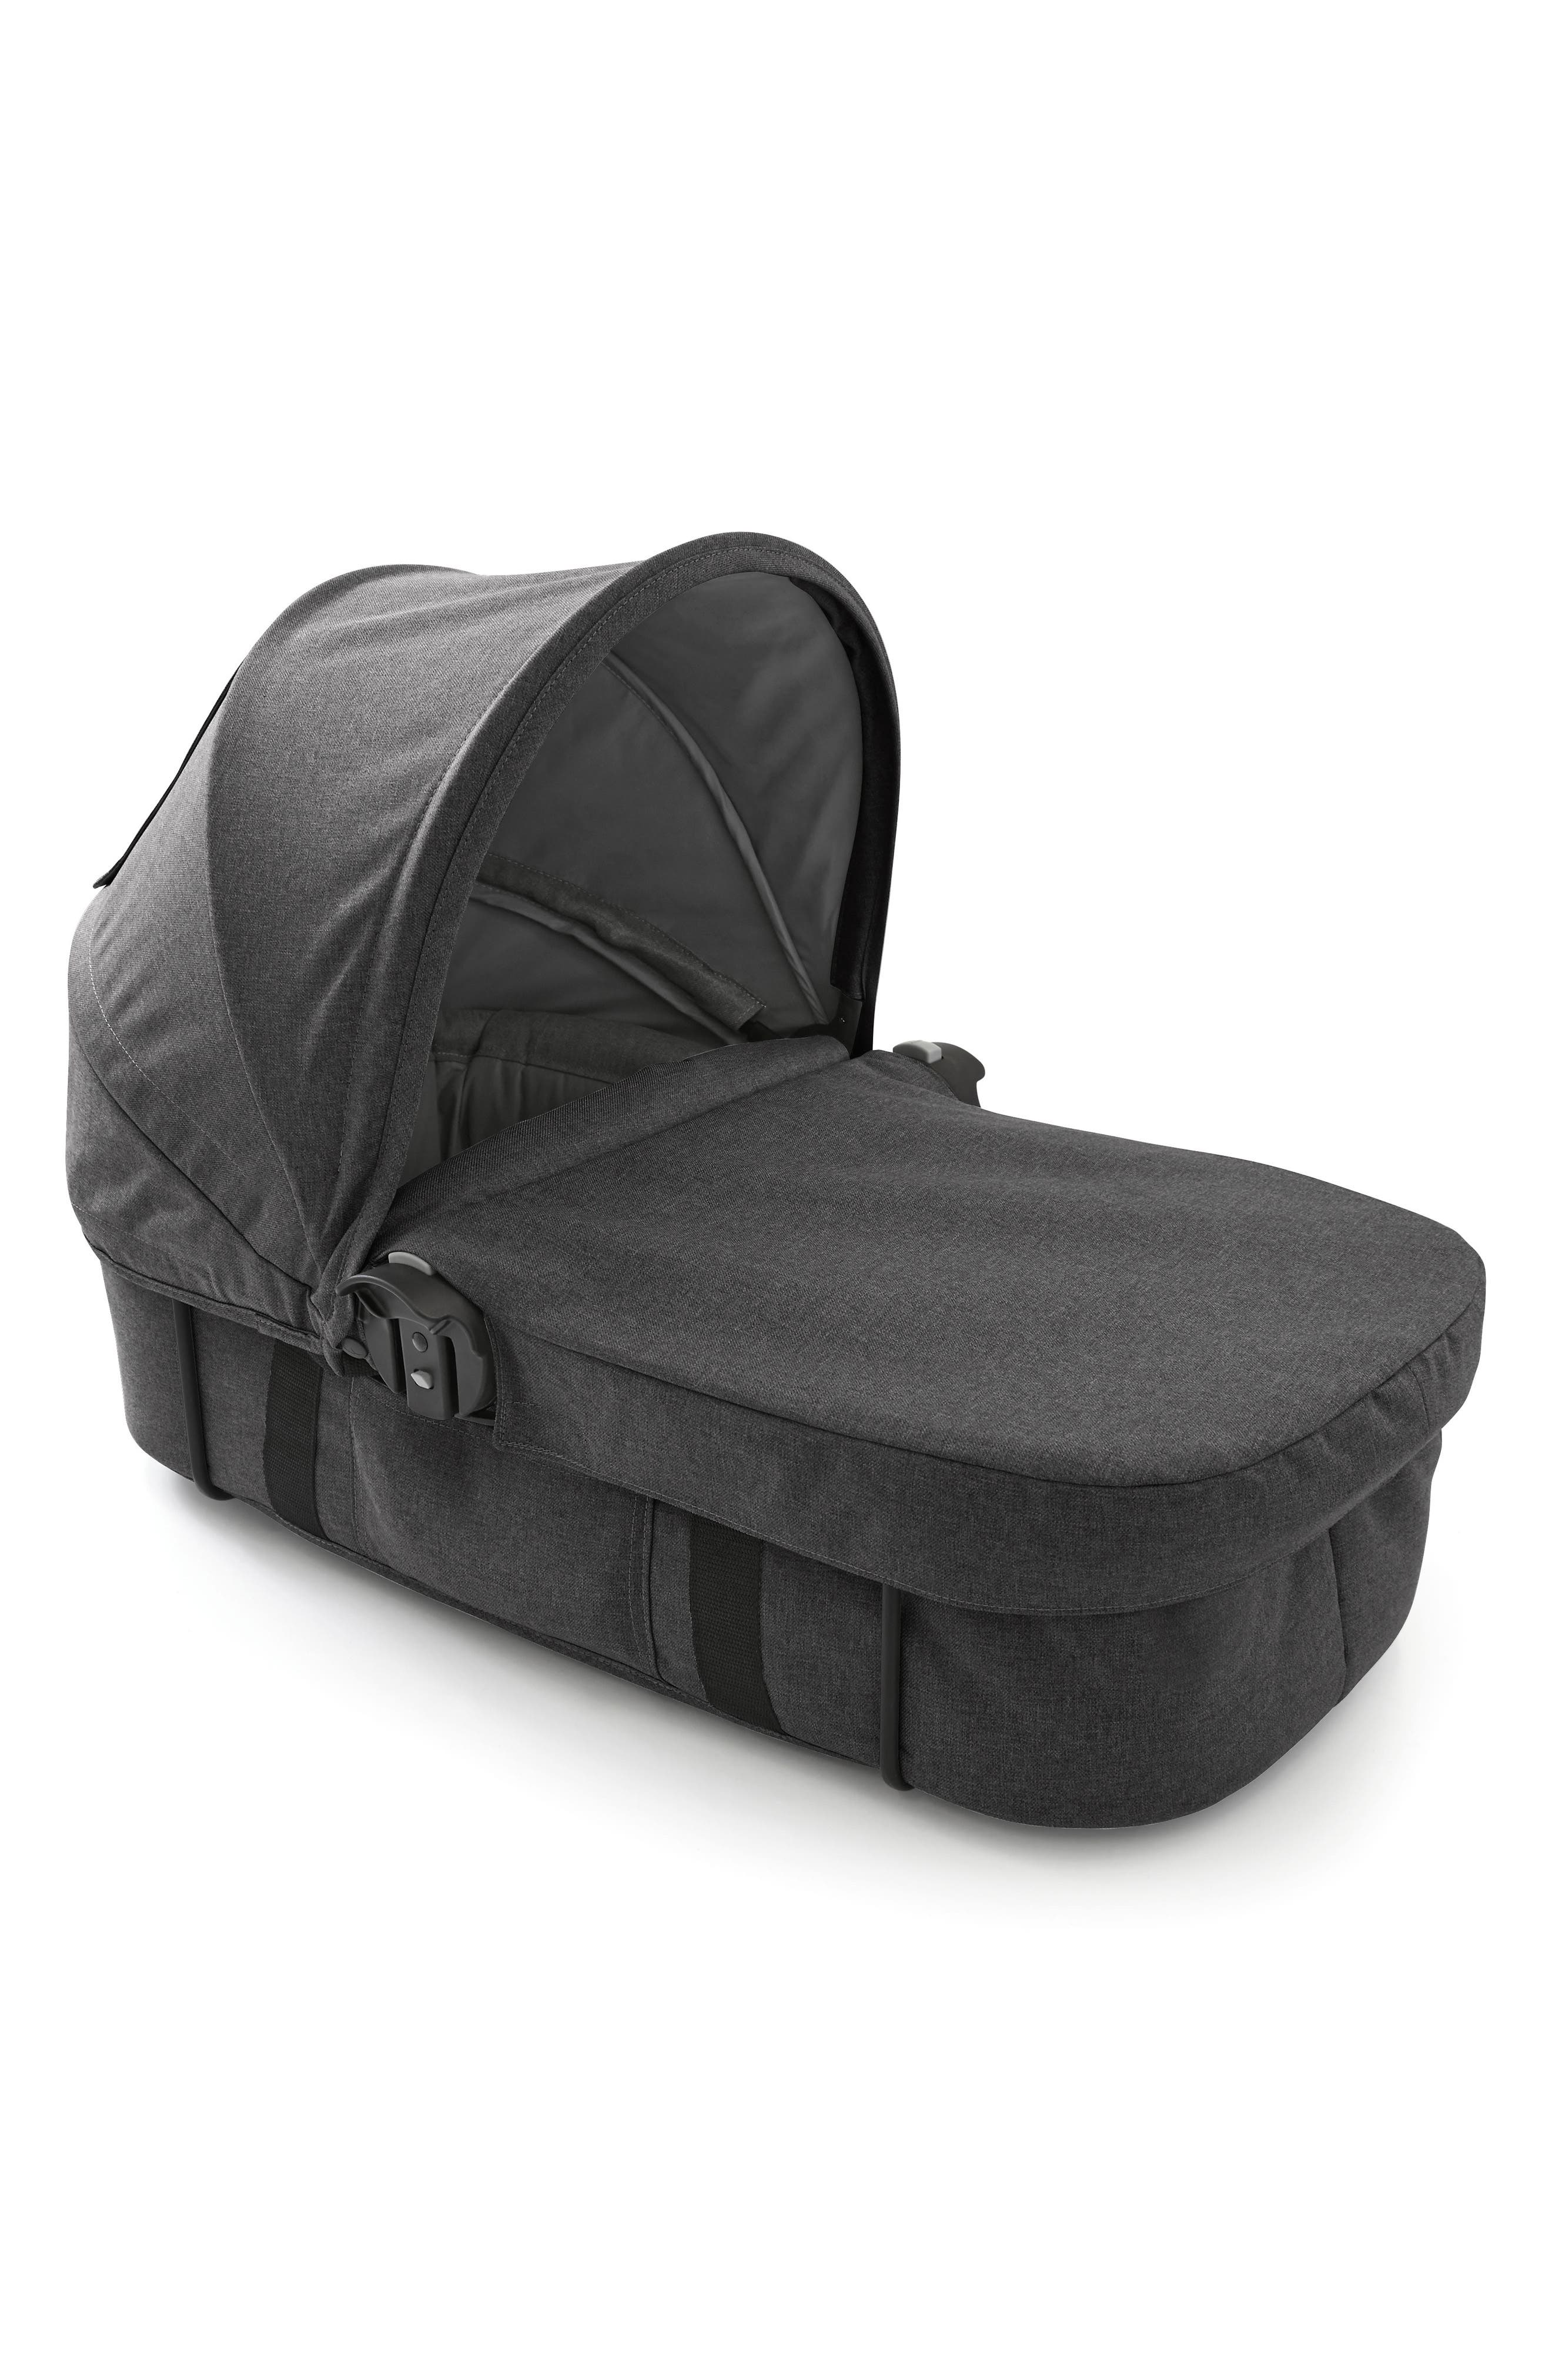 City Select<sup>®</sup> LUX Pram Kit,                             Main thumbnail 1, color,                             GRANITE